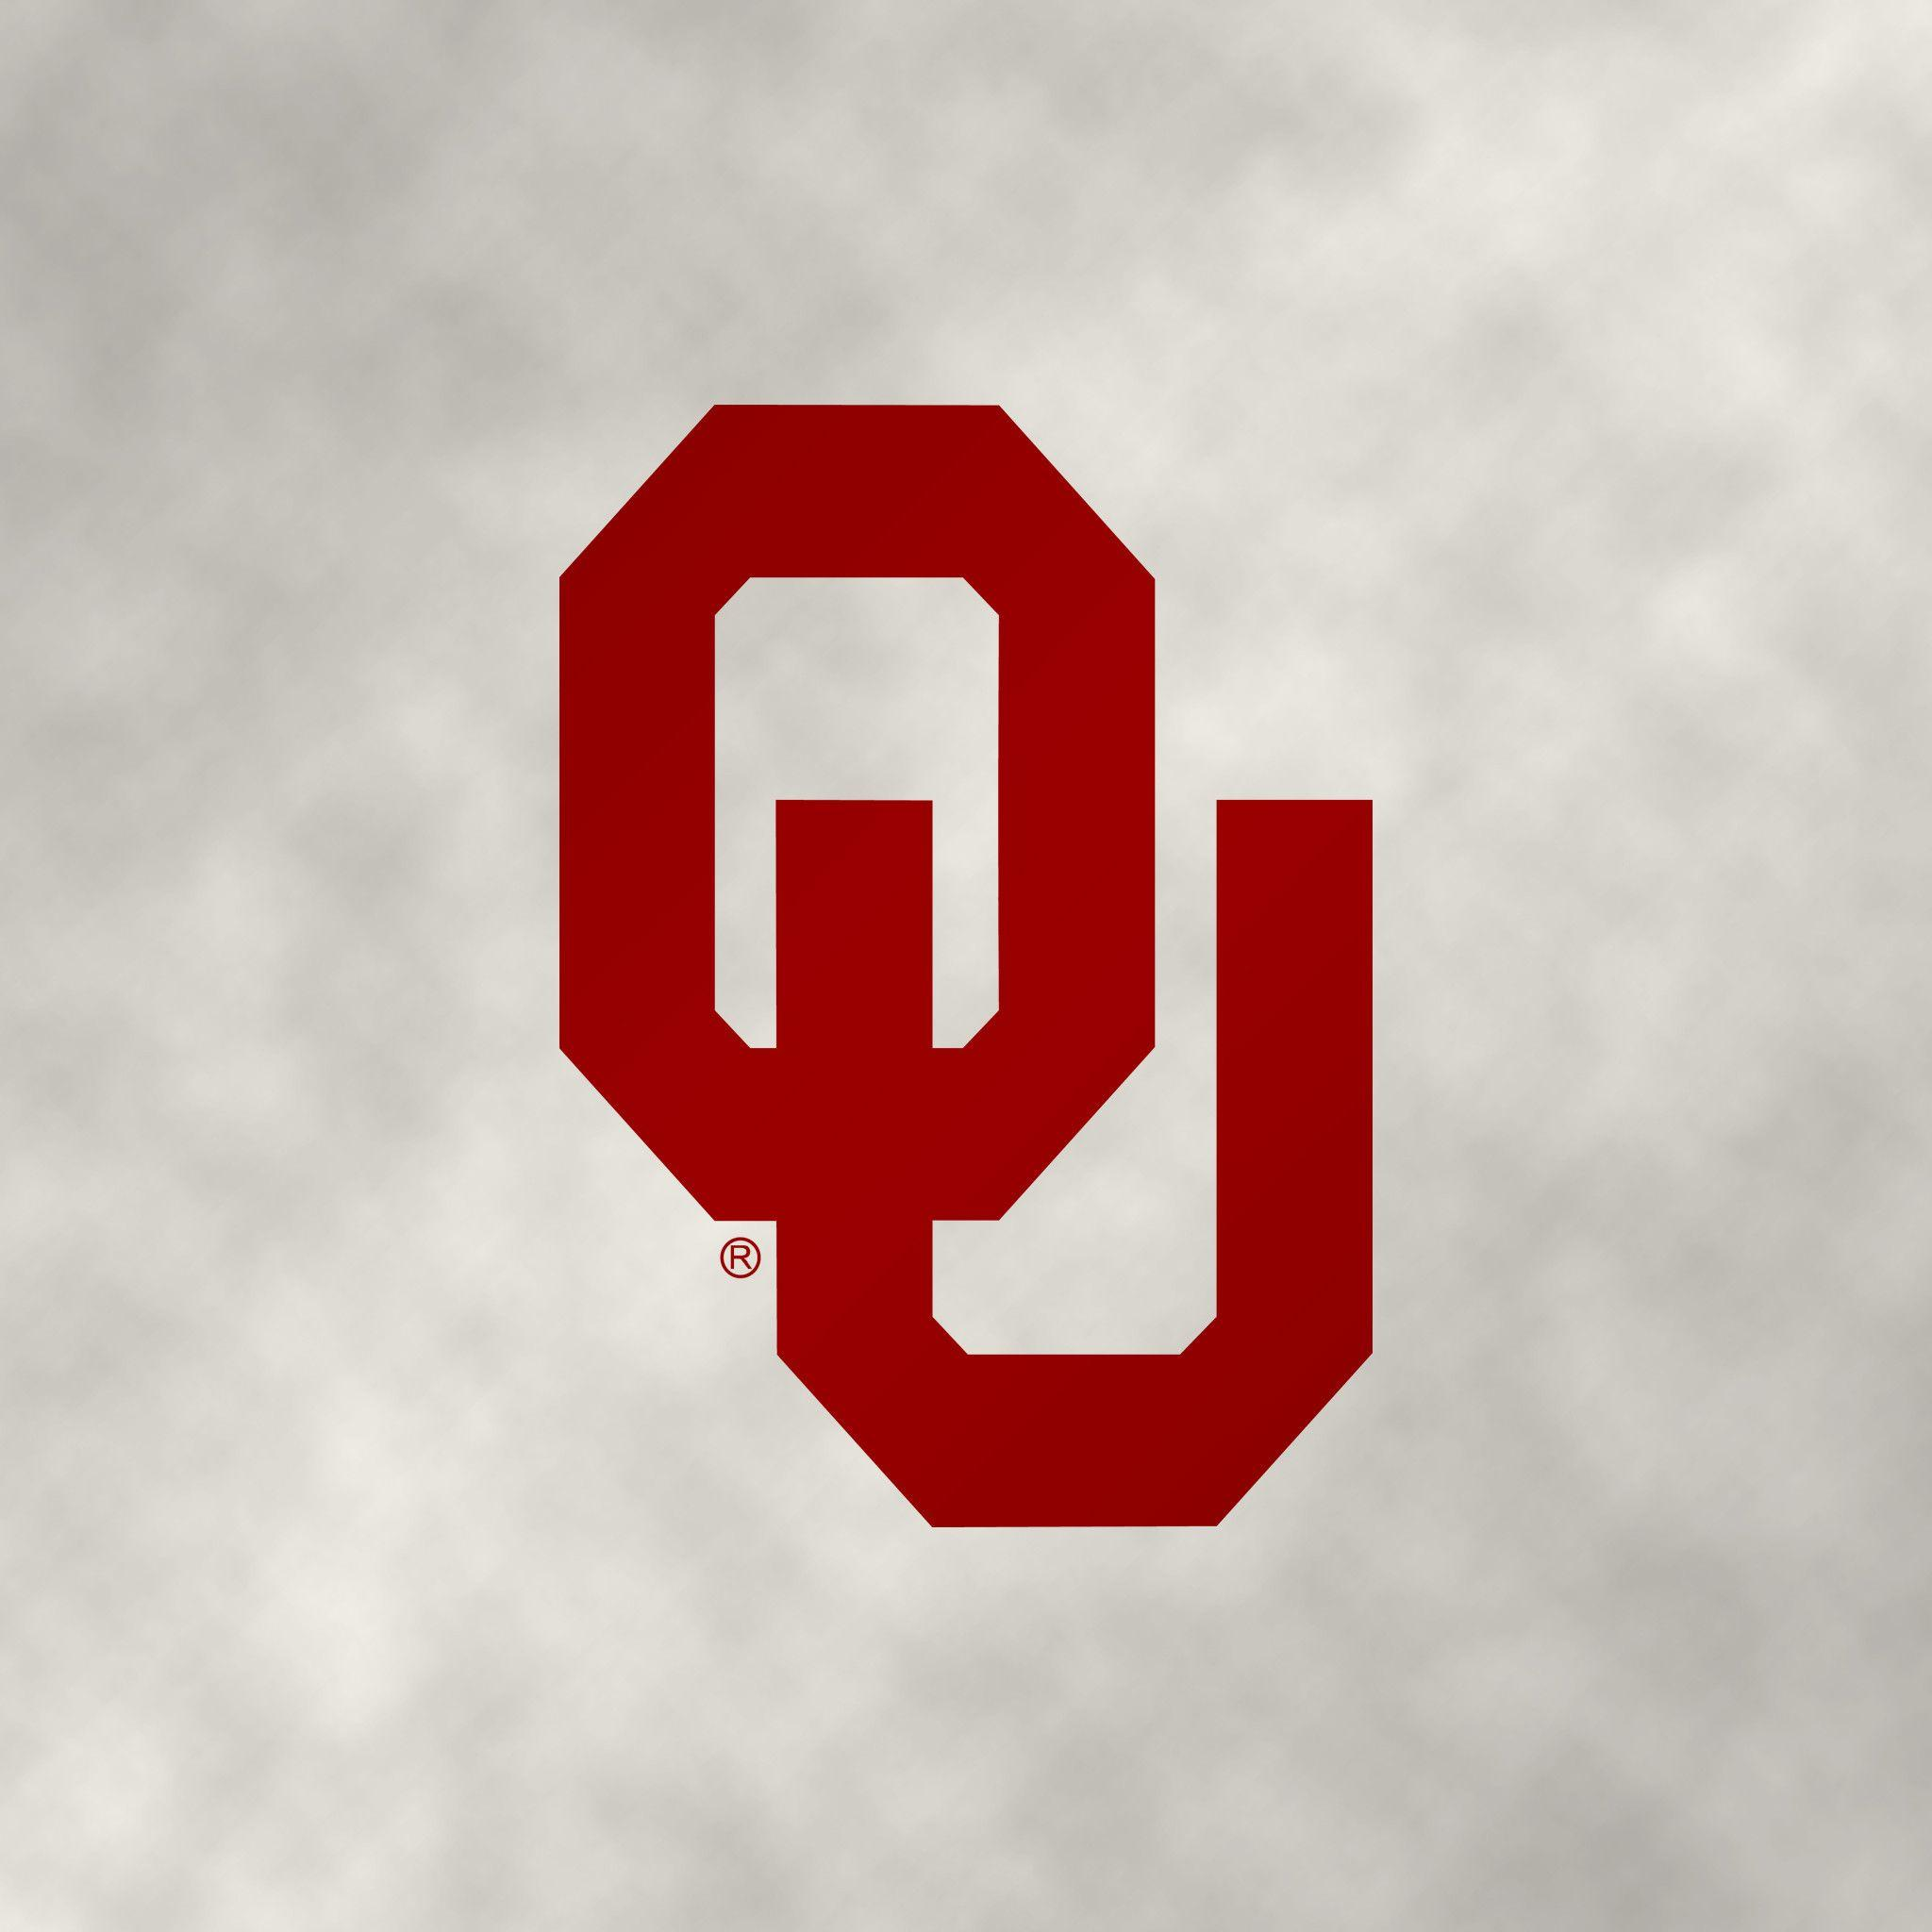 Oklahoma Sooners Wallpapers - Wallpaper Cave